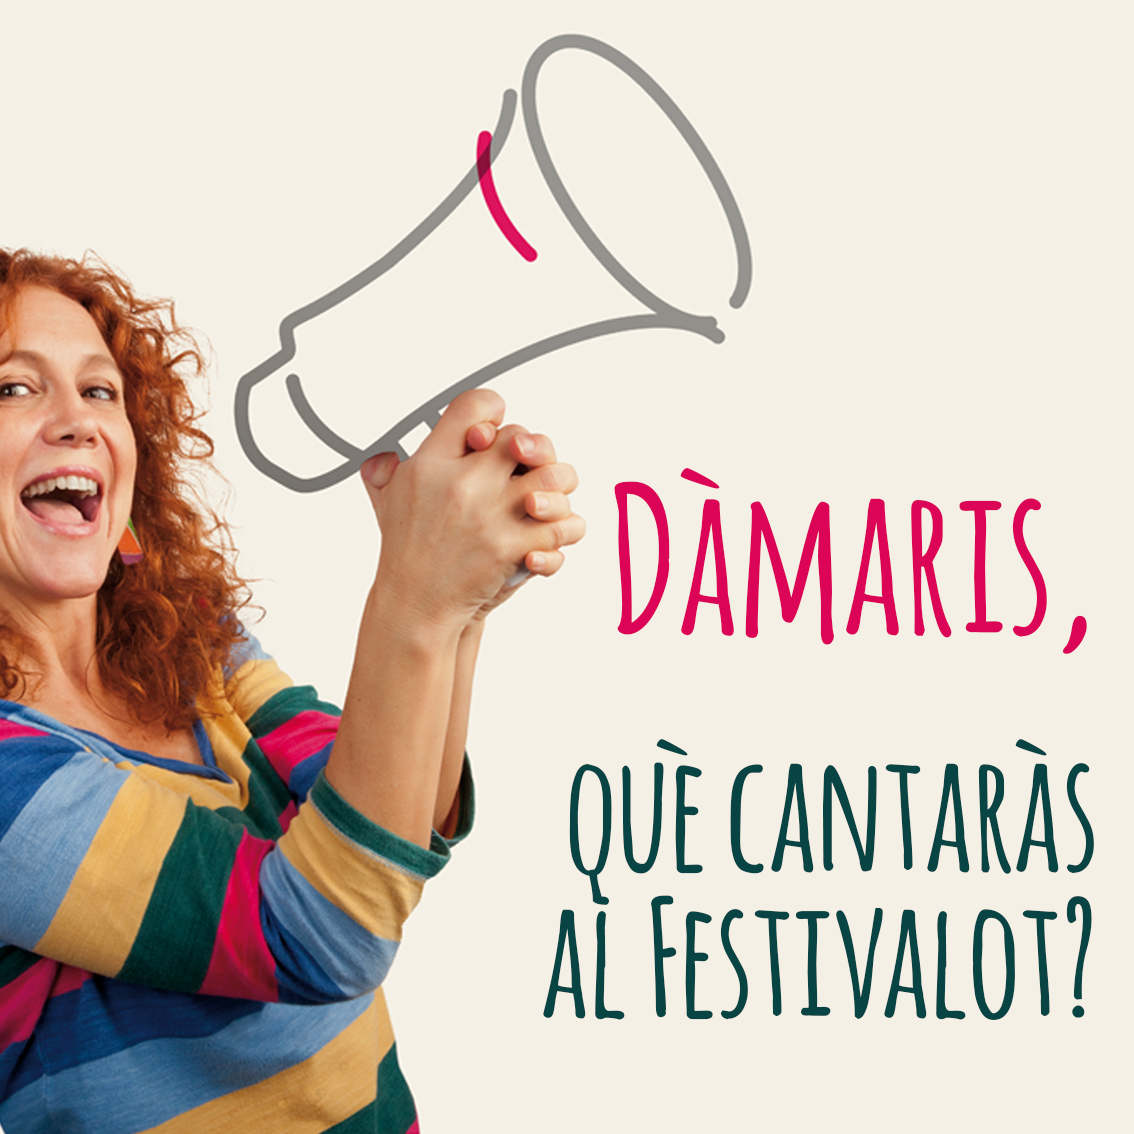 que-cantaras-damaris-web